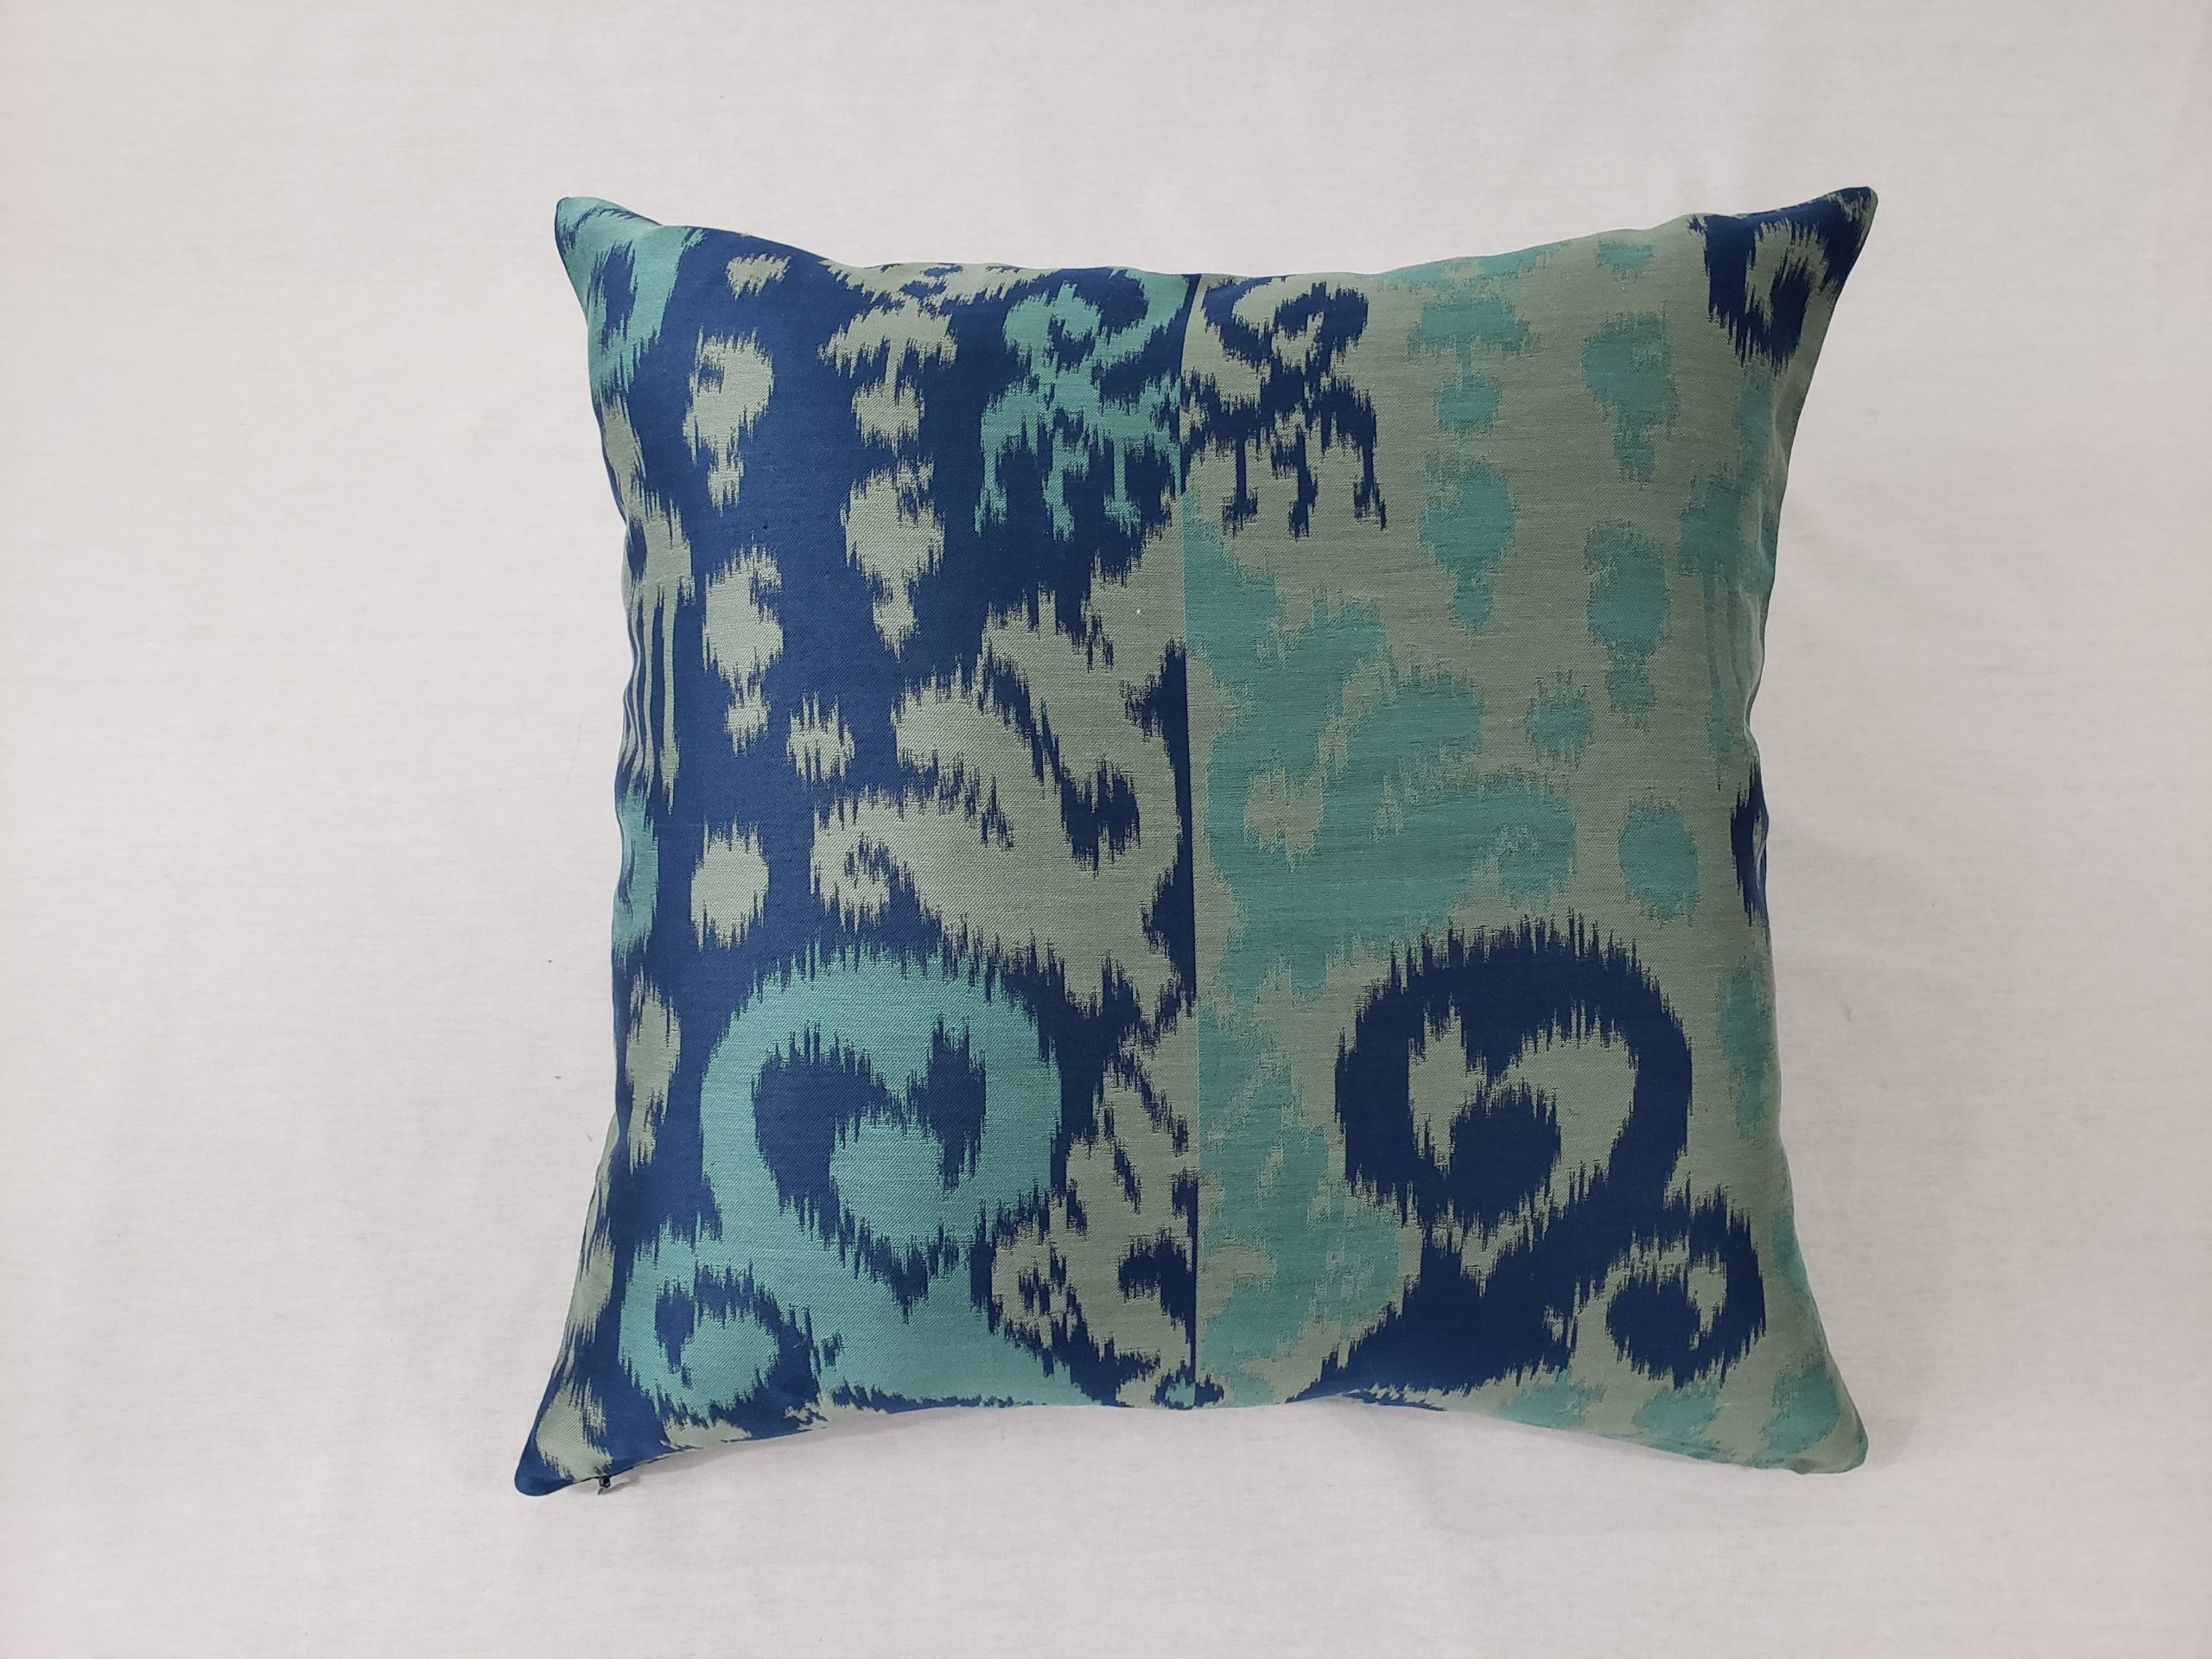 A blue & green ikat patterned cushion